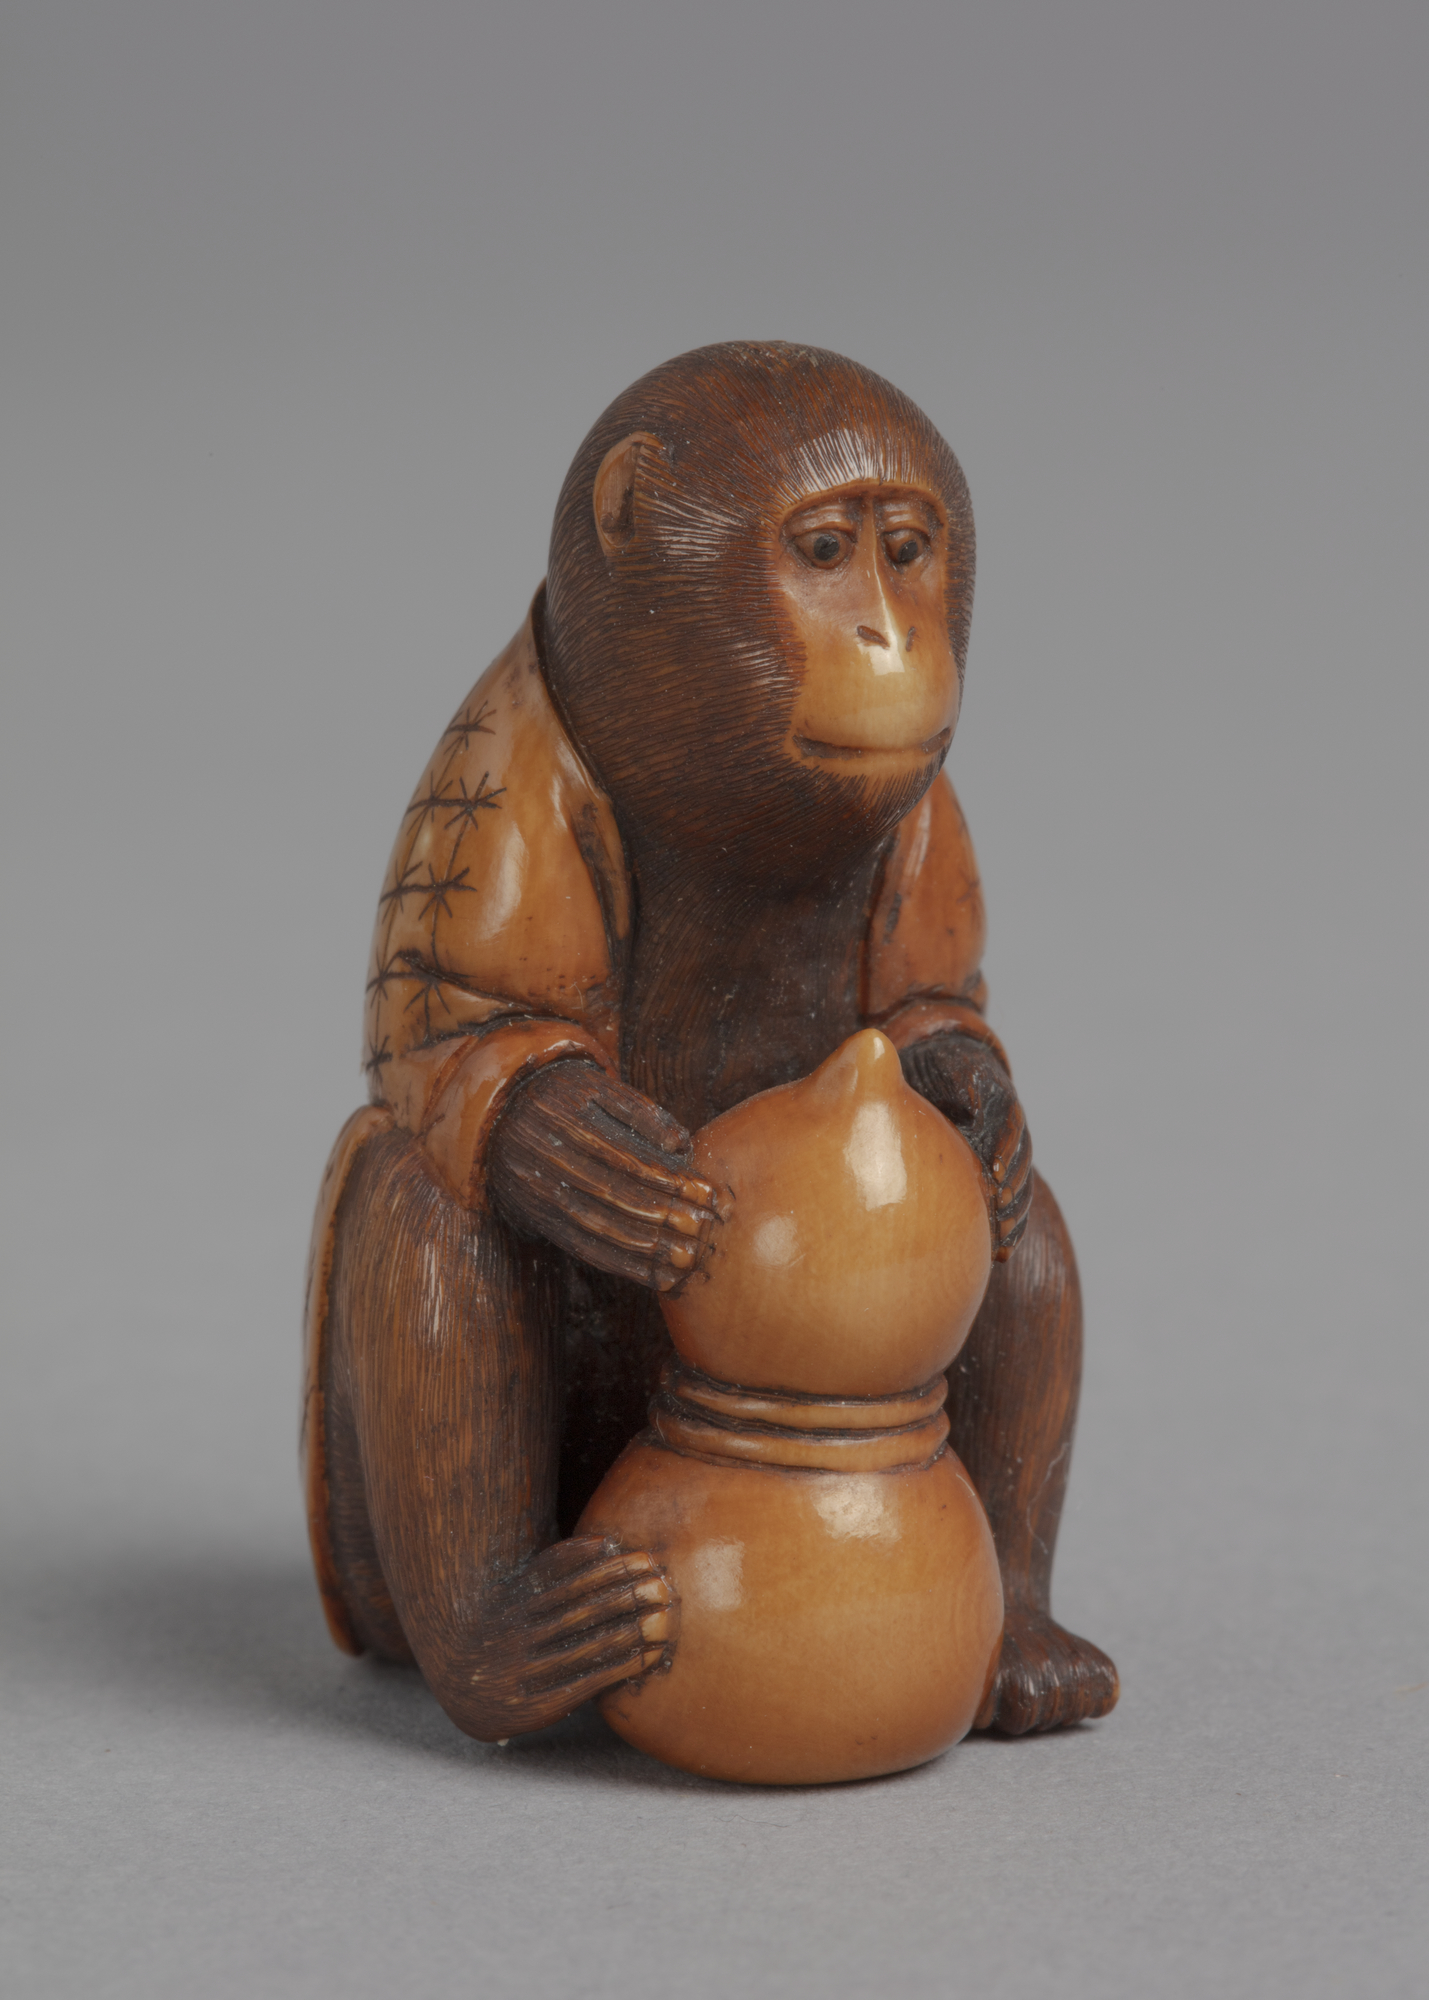 A Japanese boxwood netsuke of a monkey wearing a robe, seated and holding a double gourd in its paws.